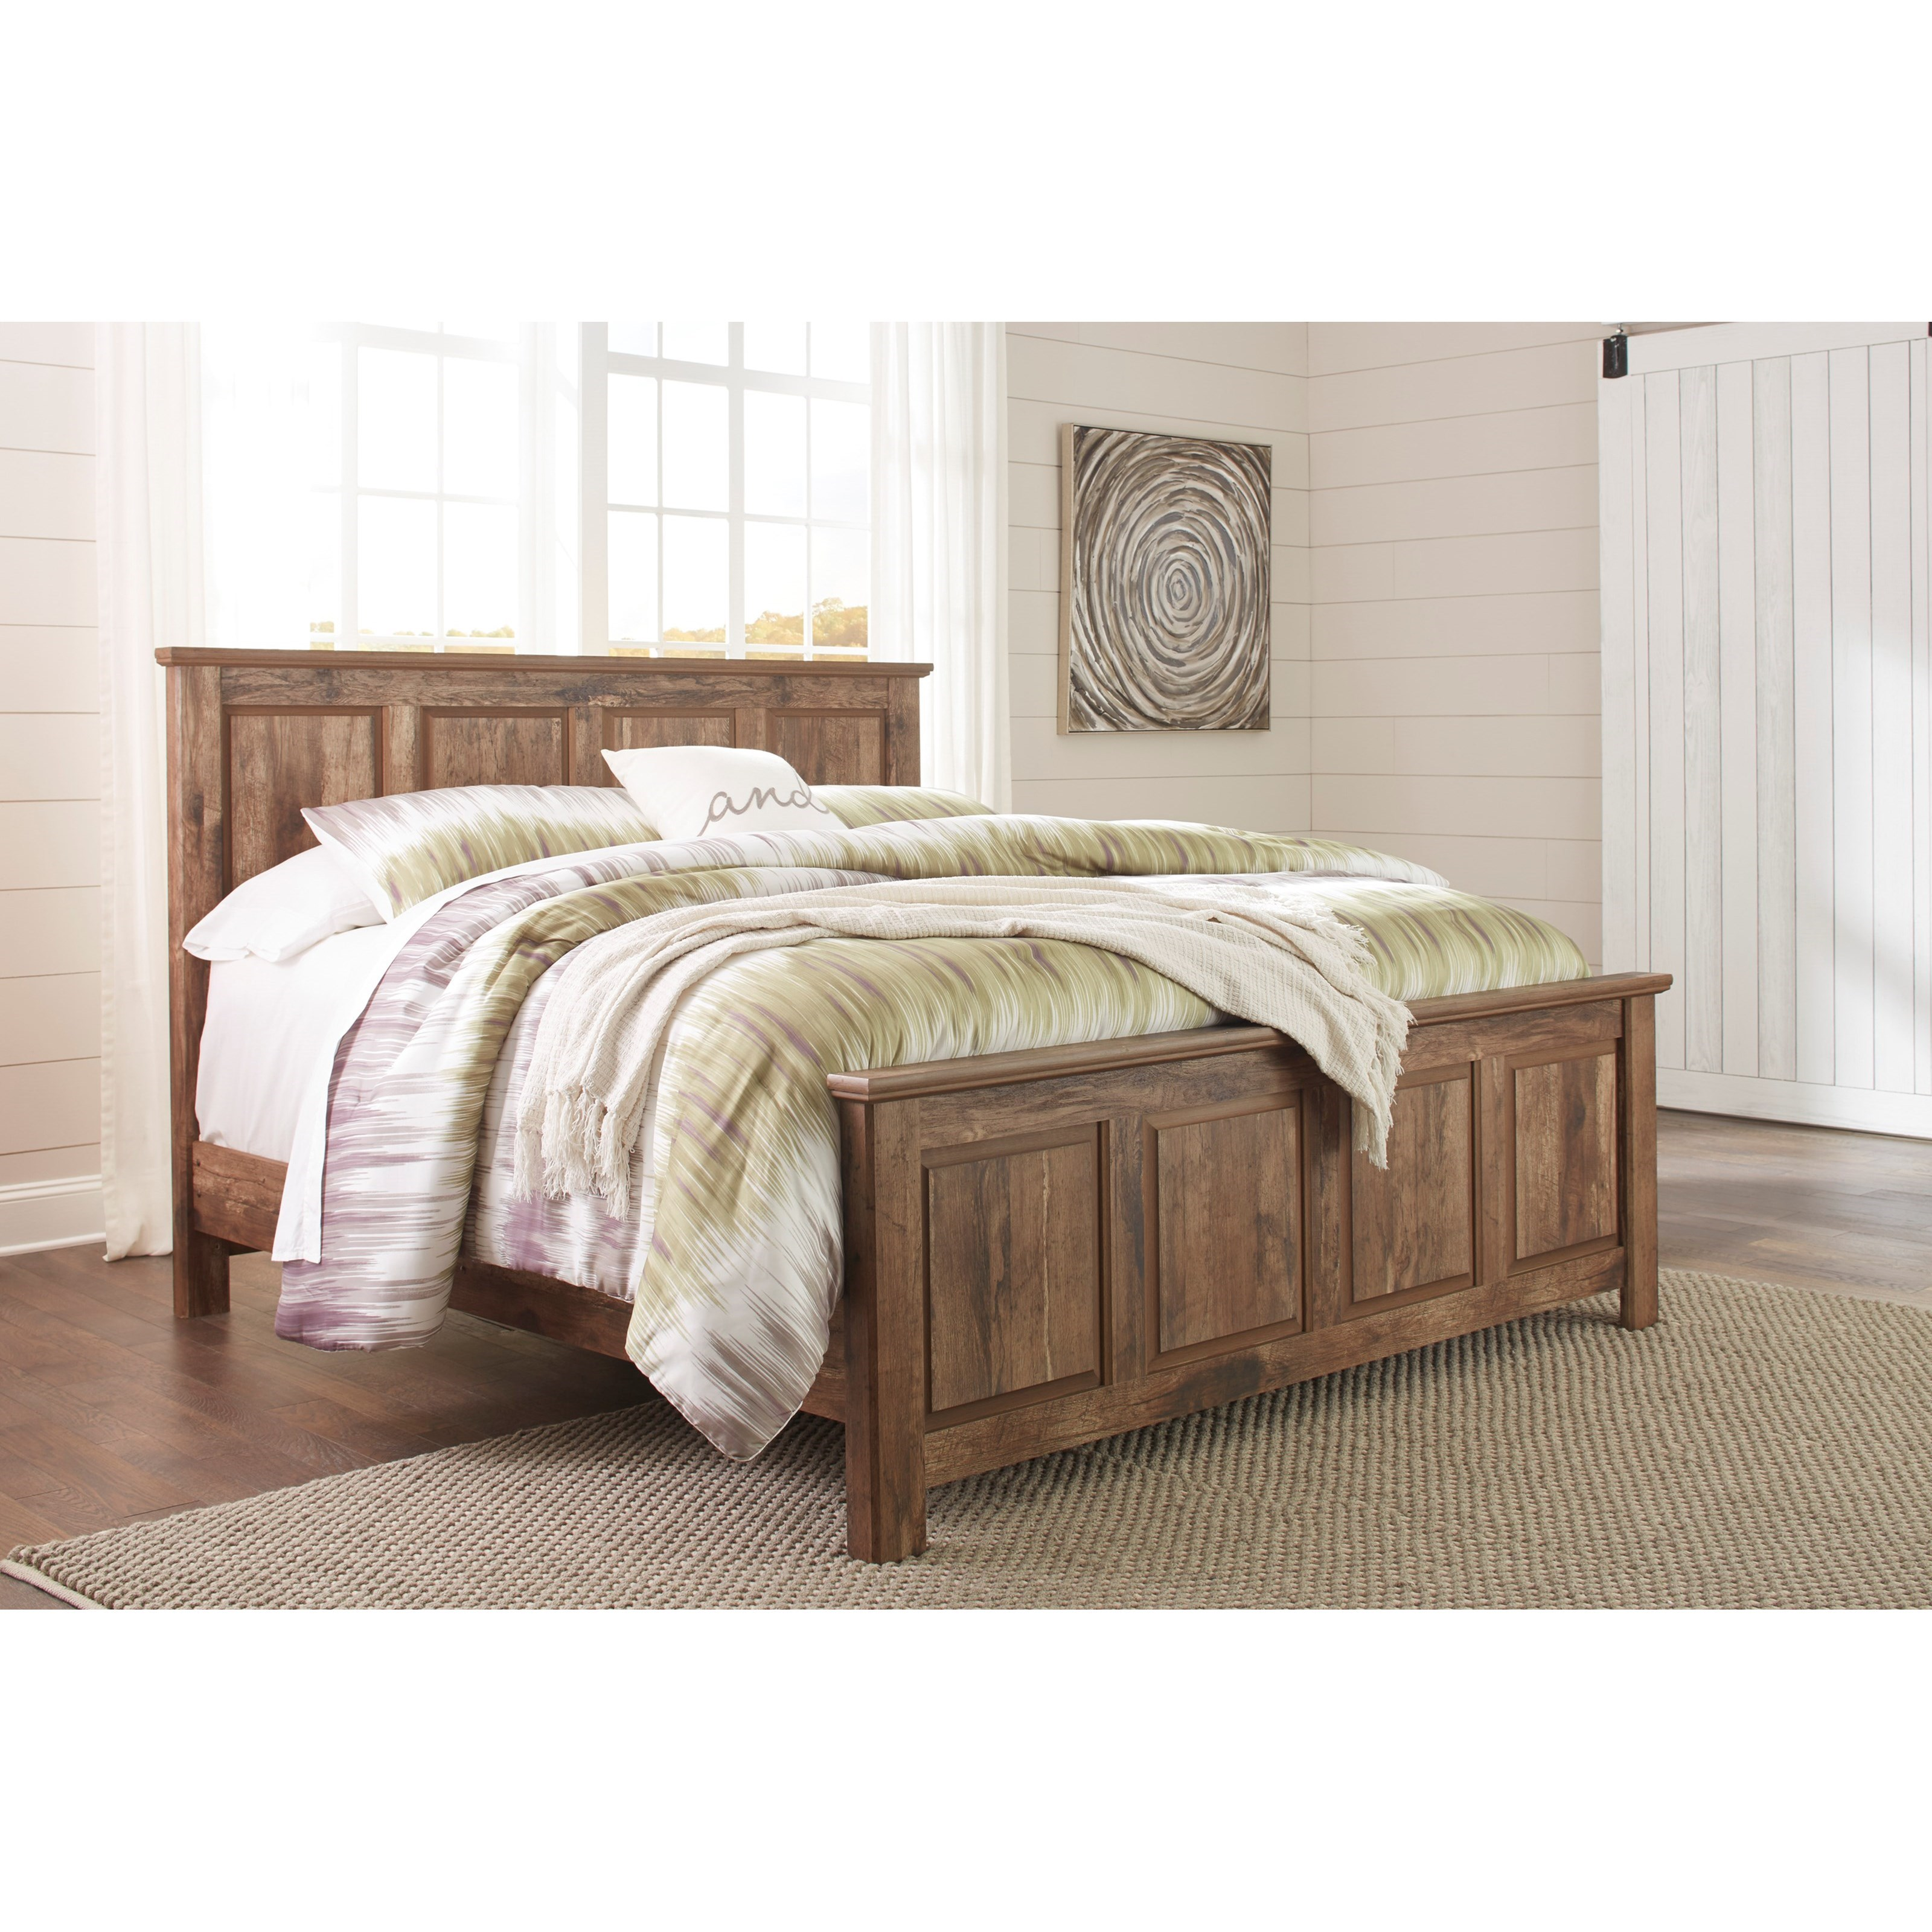 Ashley Furniture In Colorado: Signature Design By Ashley Blaneville Rustic Style King